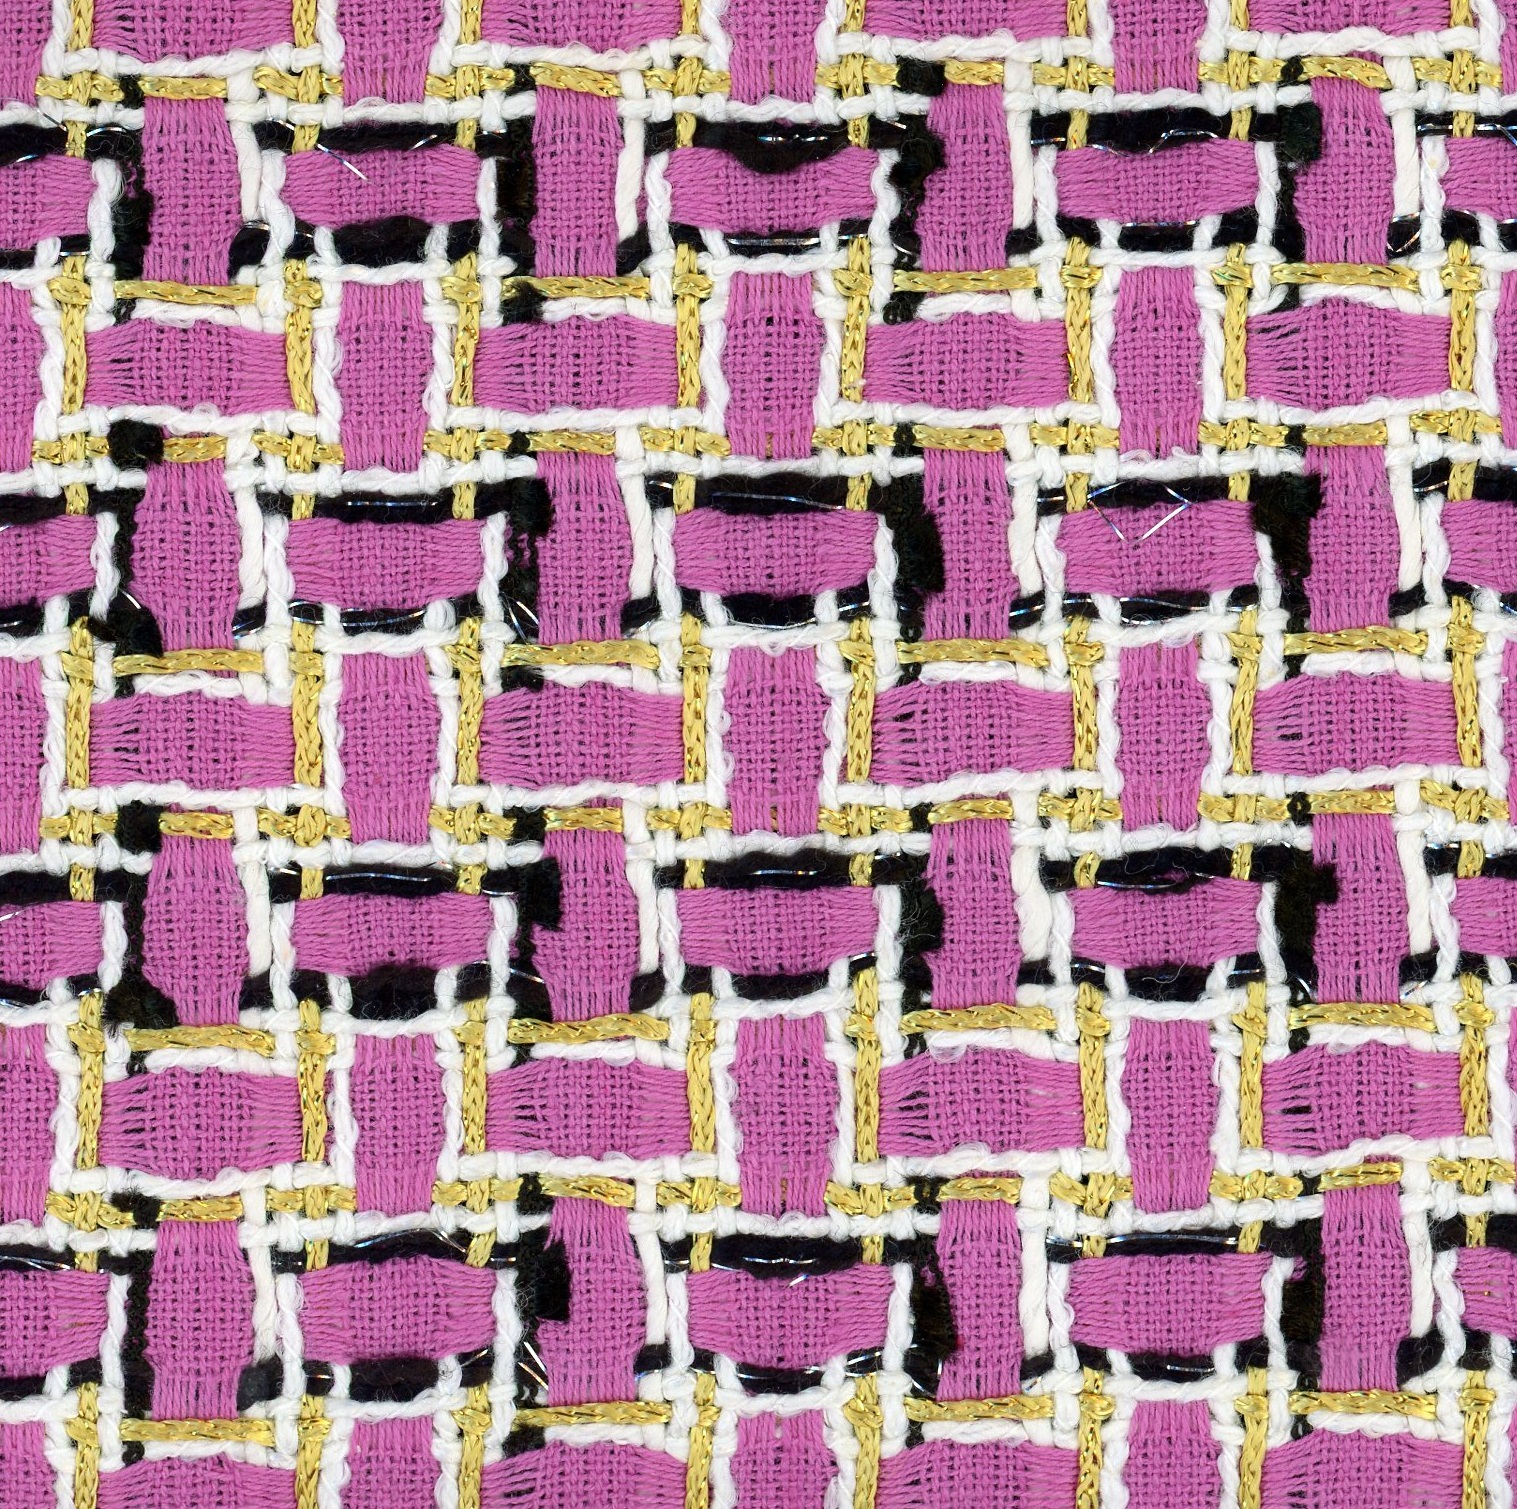 pink and metallic gold fabric